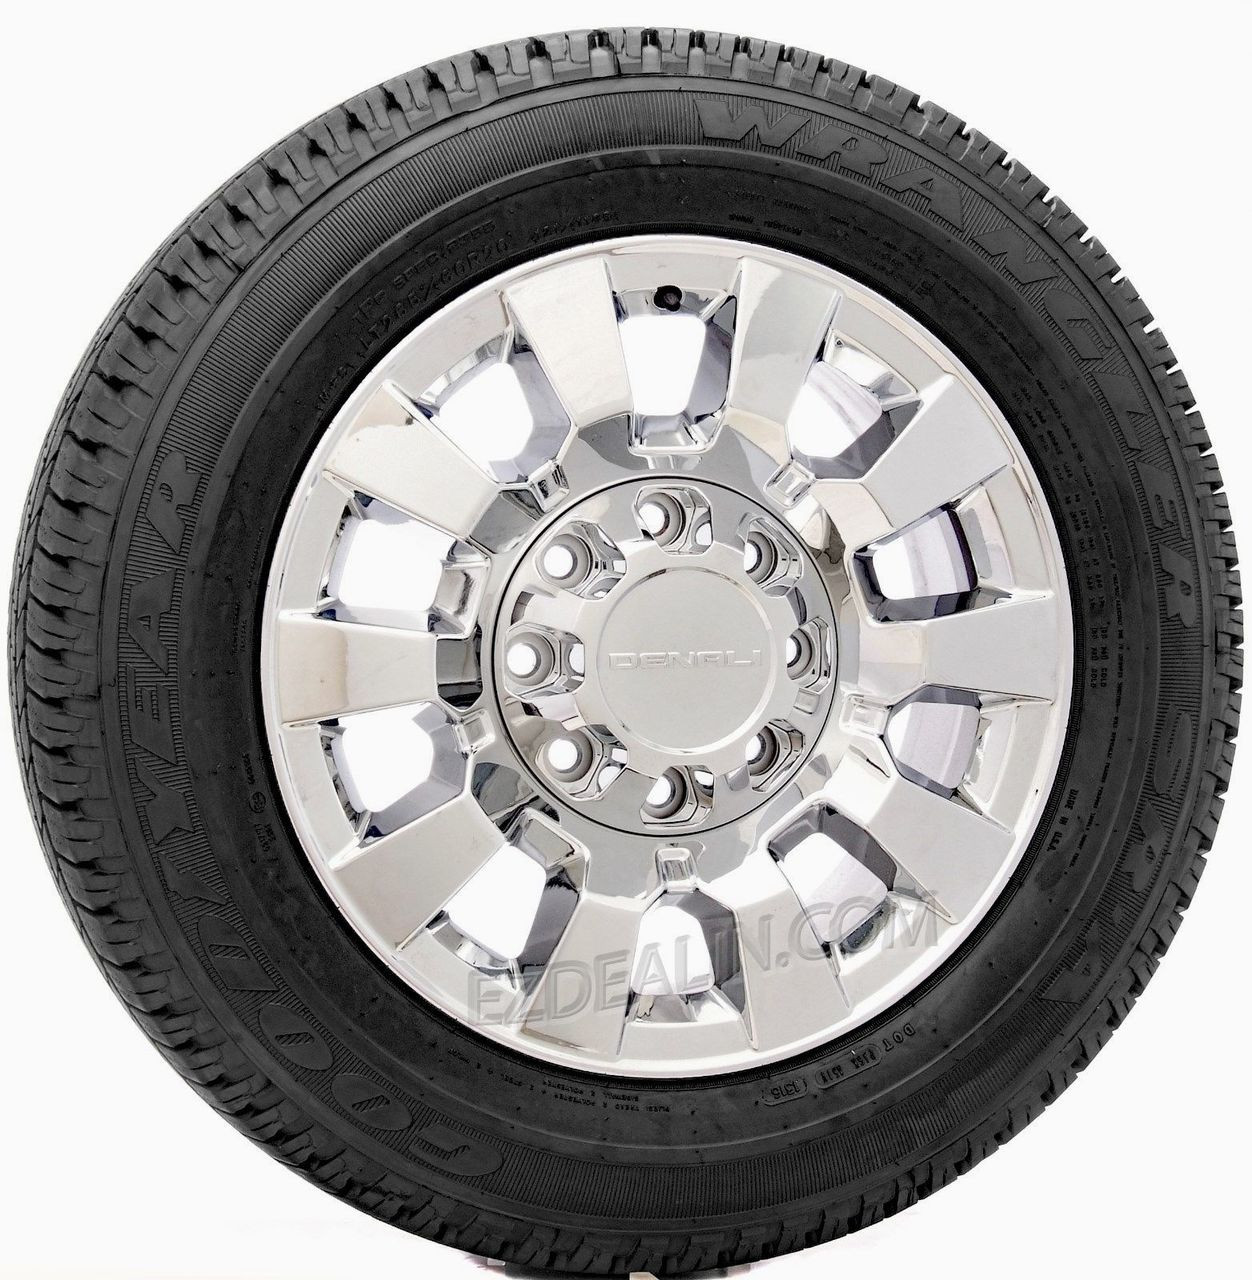 "New Takeoff GMC Sierra Denali 2500 8 Lug 20"" Chrome Wheels Goodyear Tires"